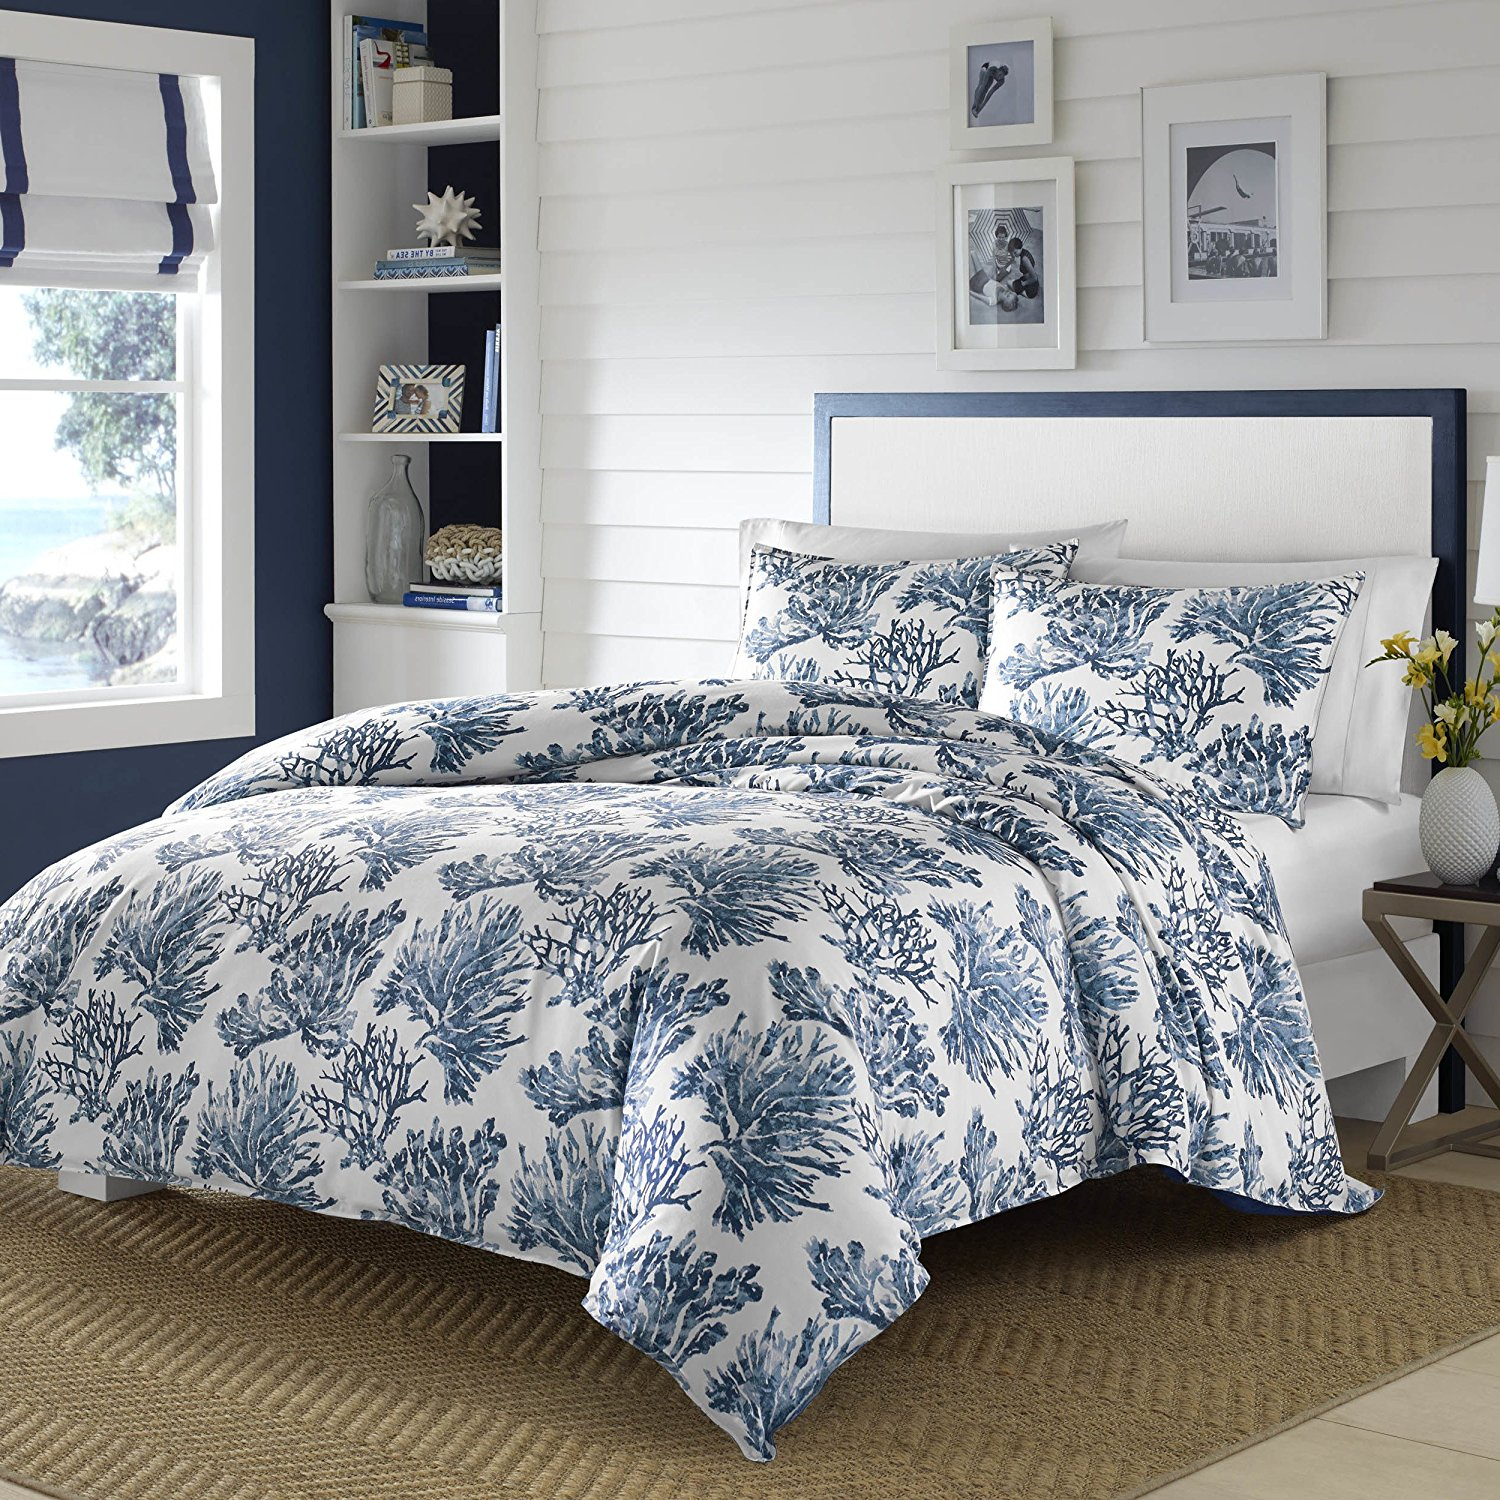 2 Piece Blue Beach Theme Duvet Cover Twin, Coastal Floral Nautical Flower Pattern Bedding, Flowers Corals Coral Leafs Ocean Sea White Solid Color Soft Warm Cozy, Cotton Percale